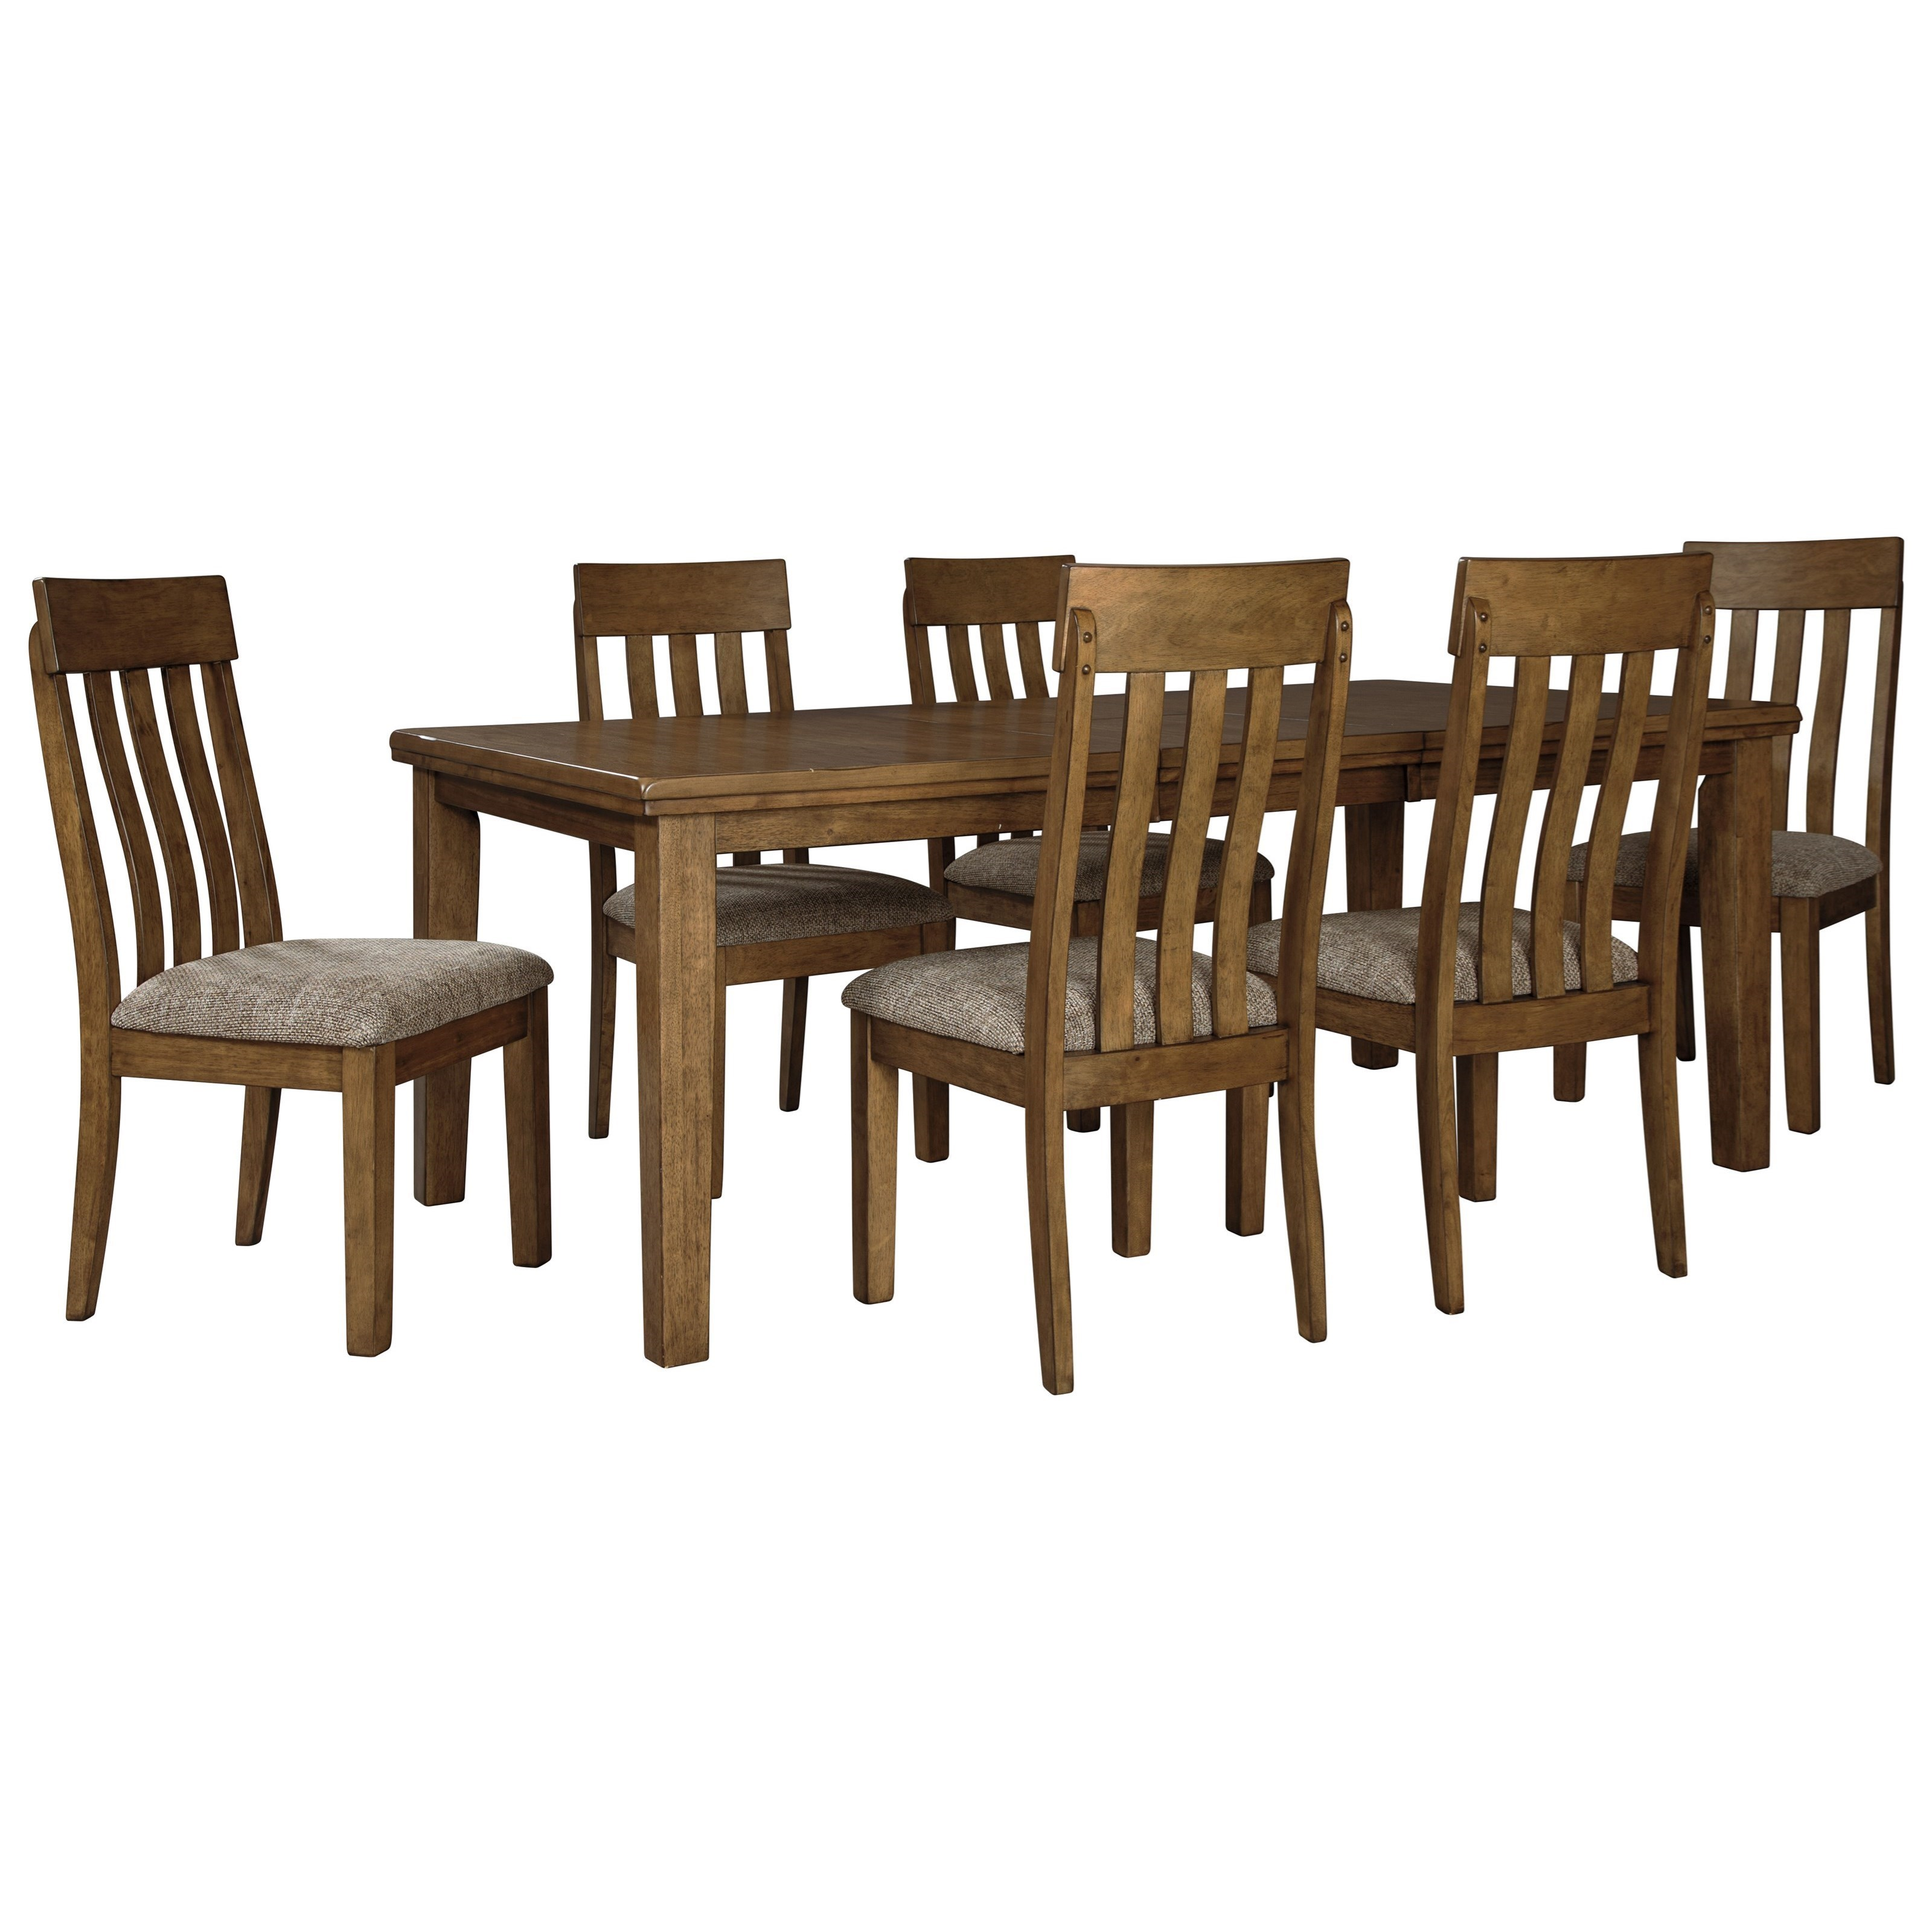 7-Piece Rectangular Table and Chair Set